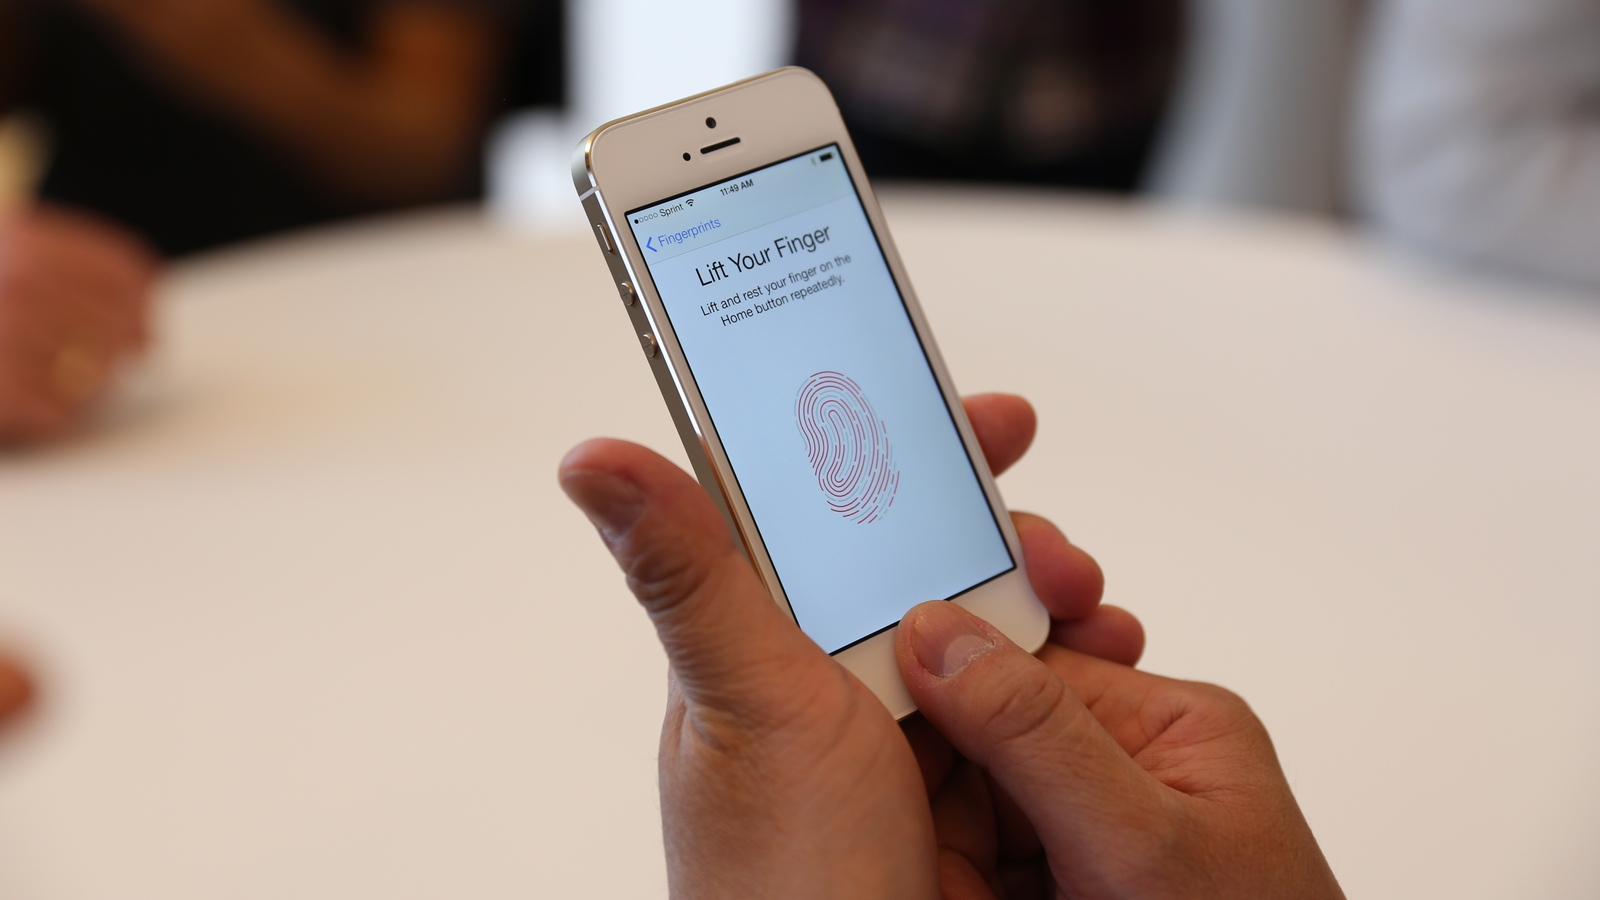 Apple has told how the popular Touch ID